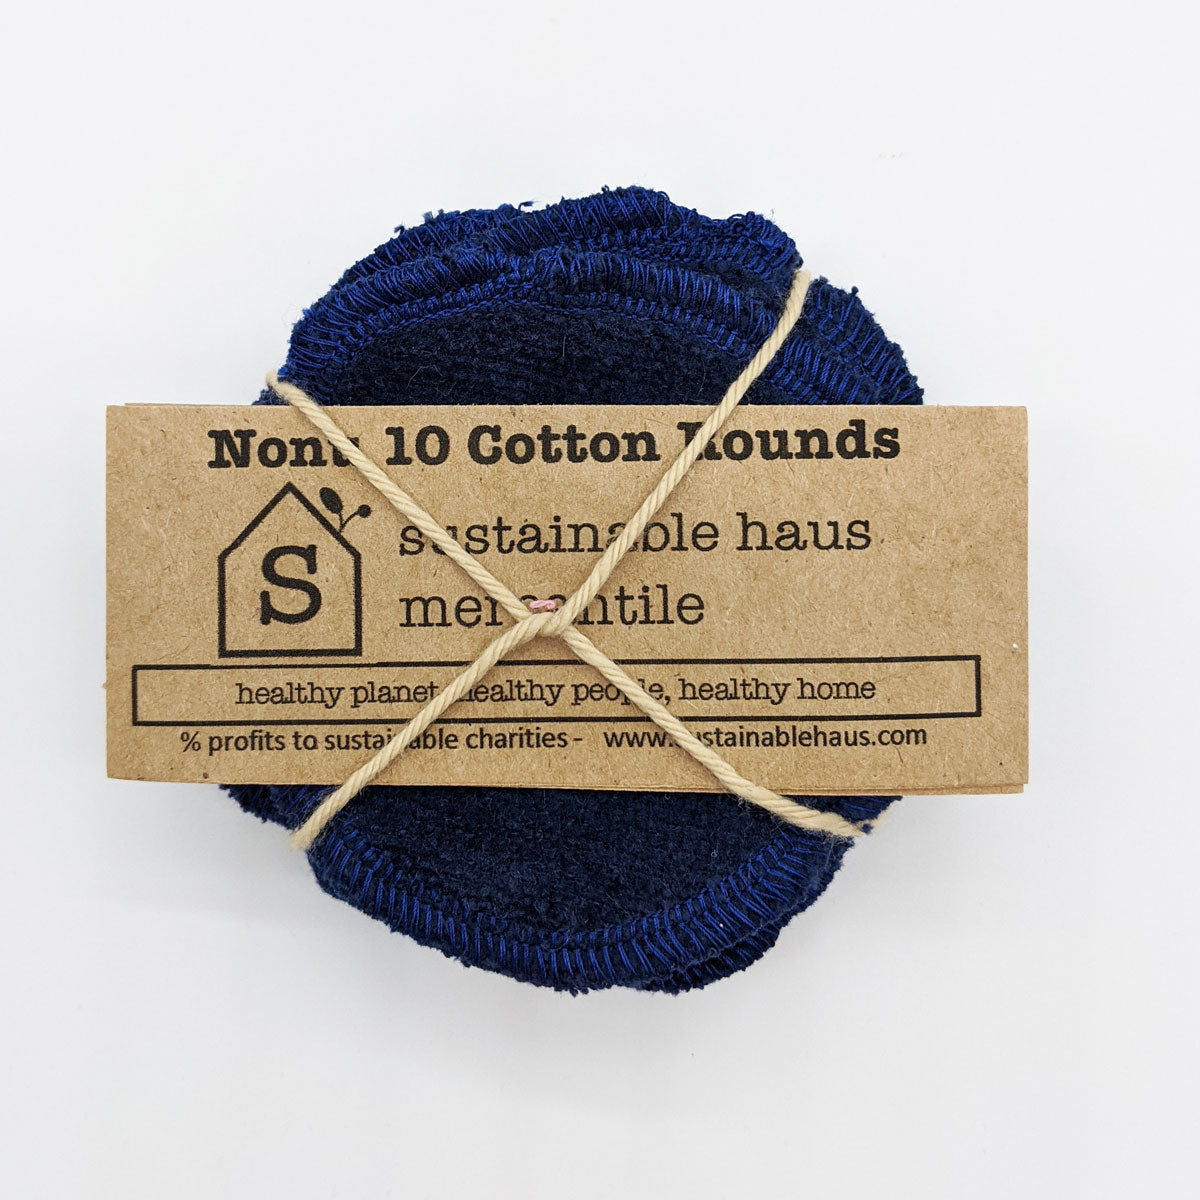 sustainable haus Reusable Cotton Rounds (10) - navy blue